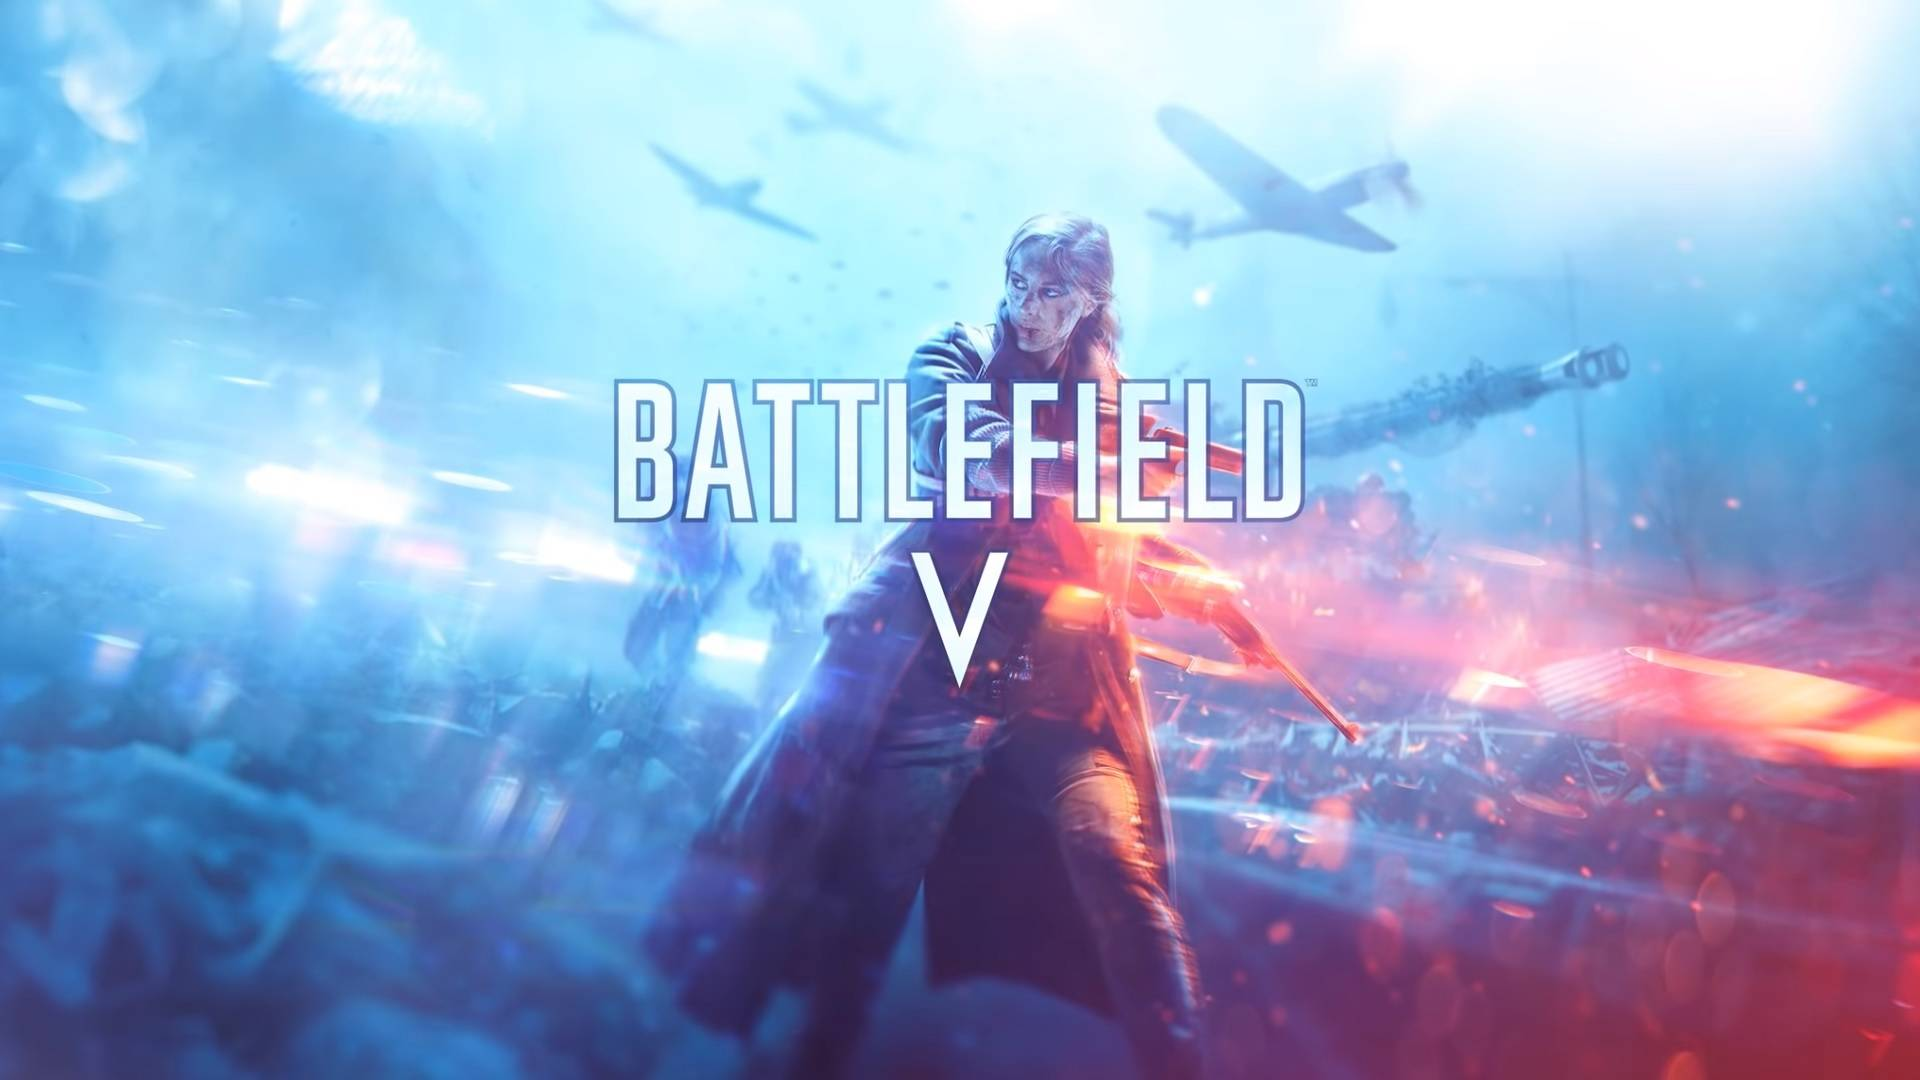 Battlefield 5 Wallpapers Top Free Battlefield 5